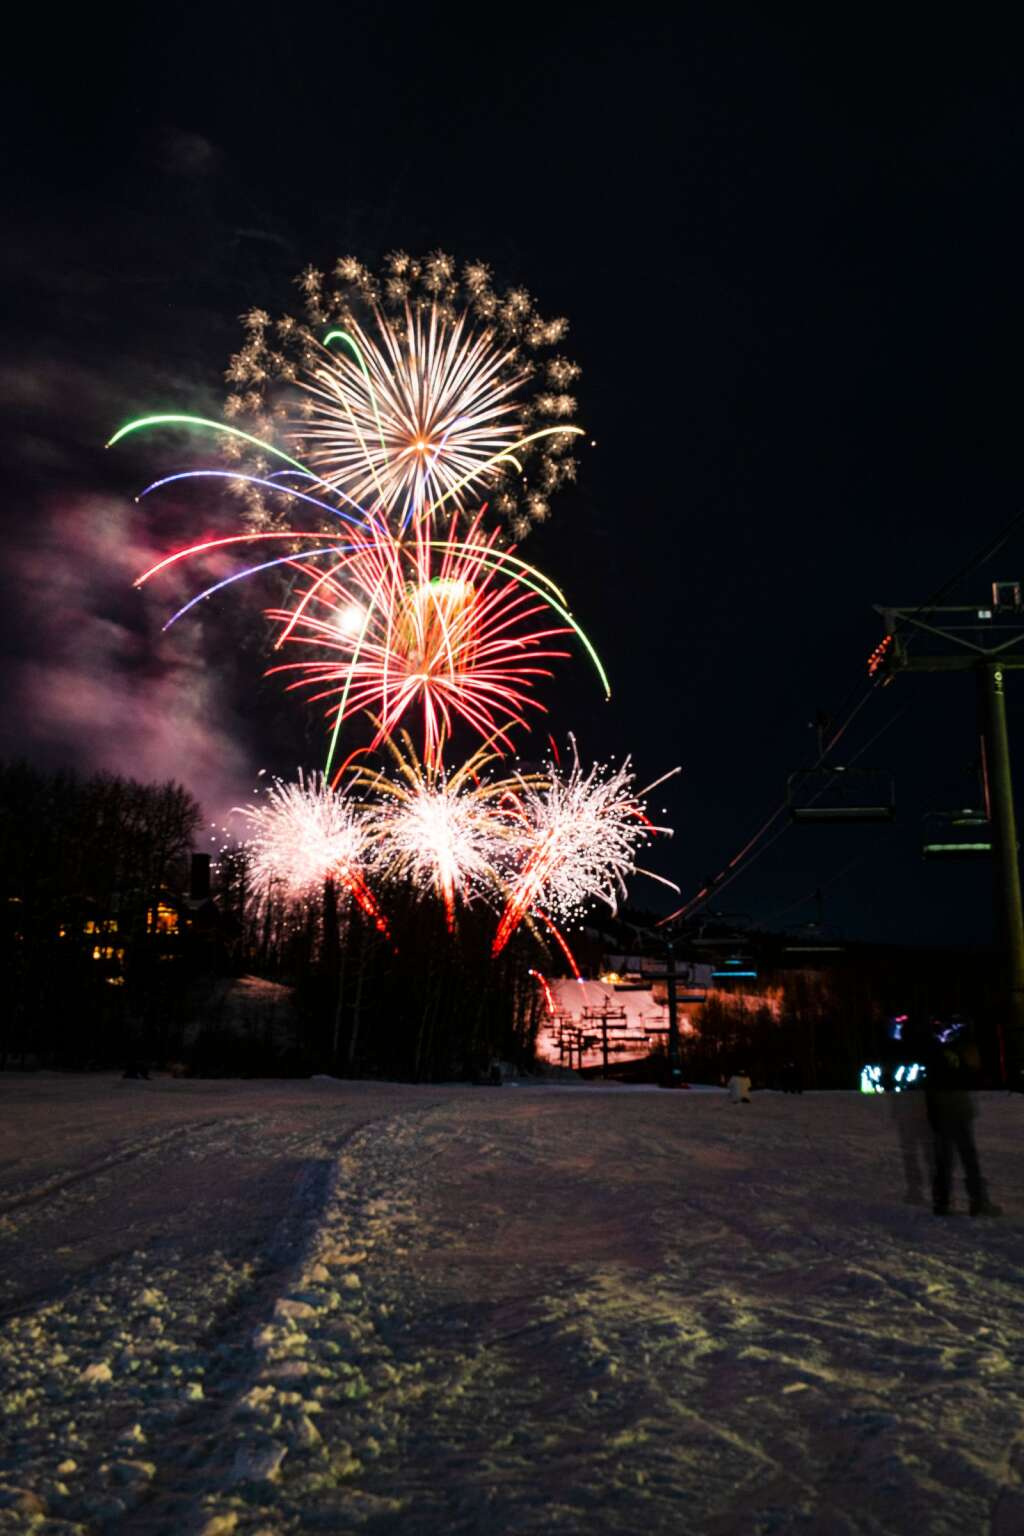 A short fireworks display for New Years Eve in Snowmass Village on Thursday, Dec. 31, 2020. (Kelsey Brunner/The Aspen Times)